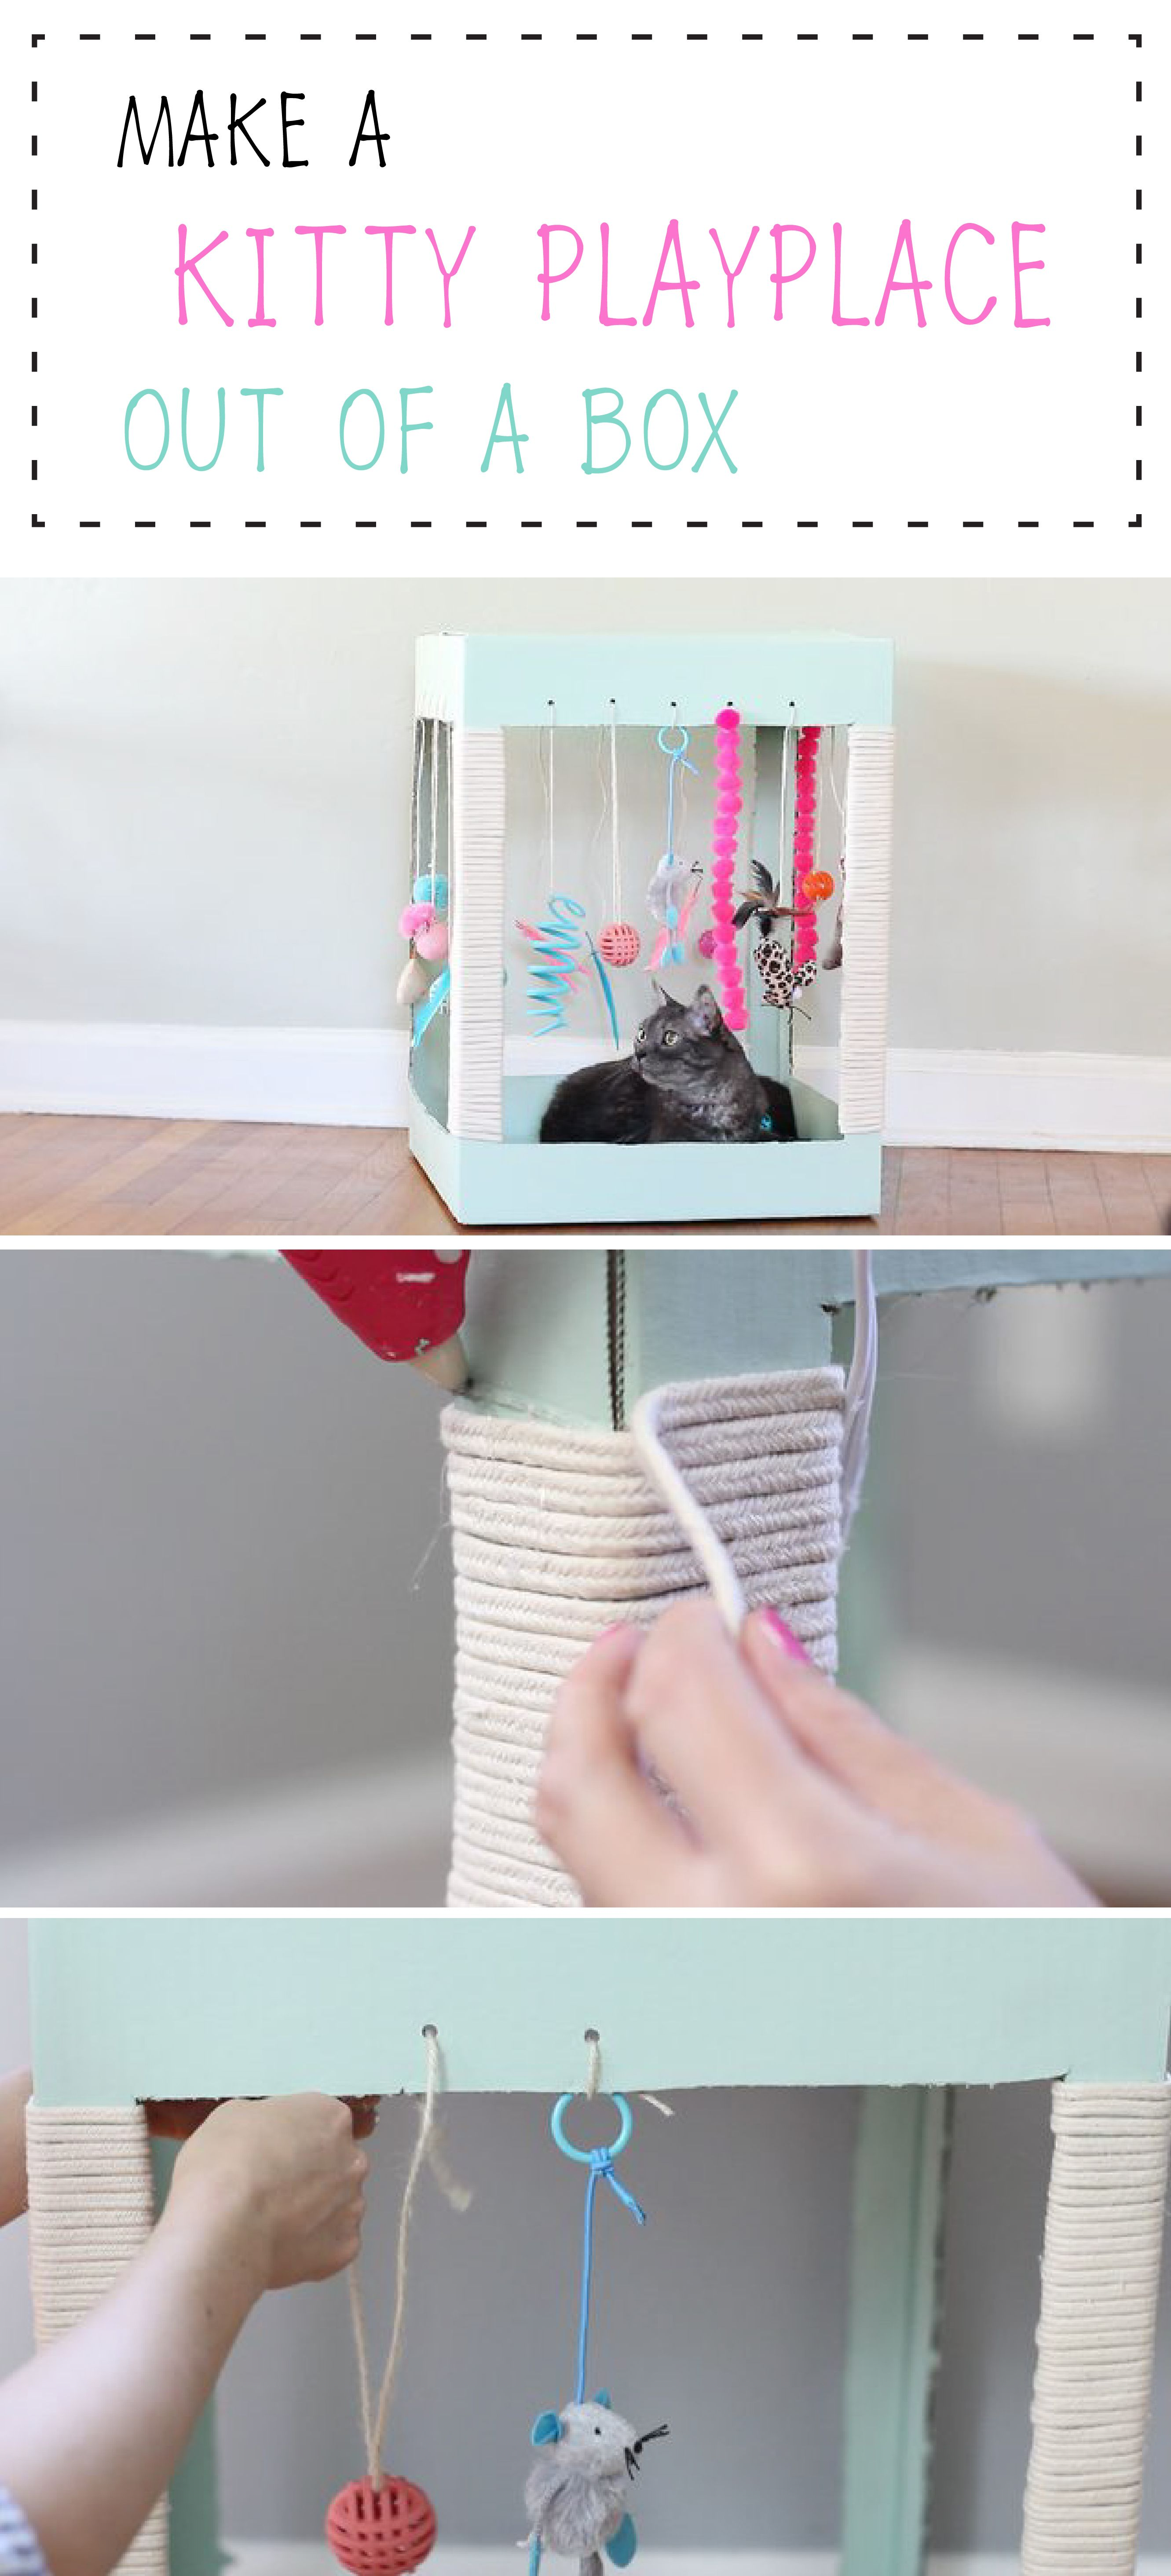 Your Cat Will Love This Adorable Diy Kitty Playplace Made Out Of A